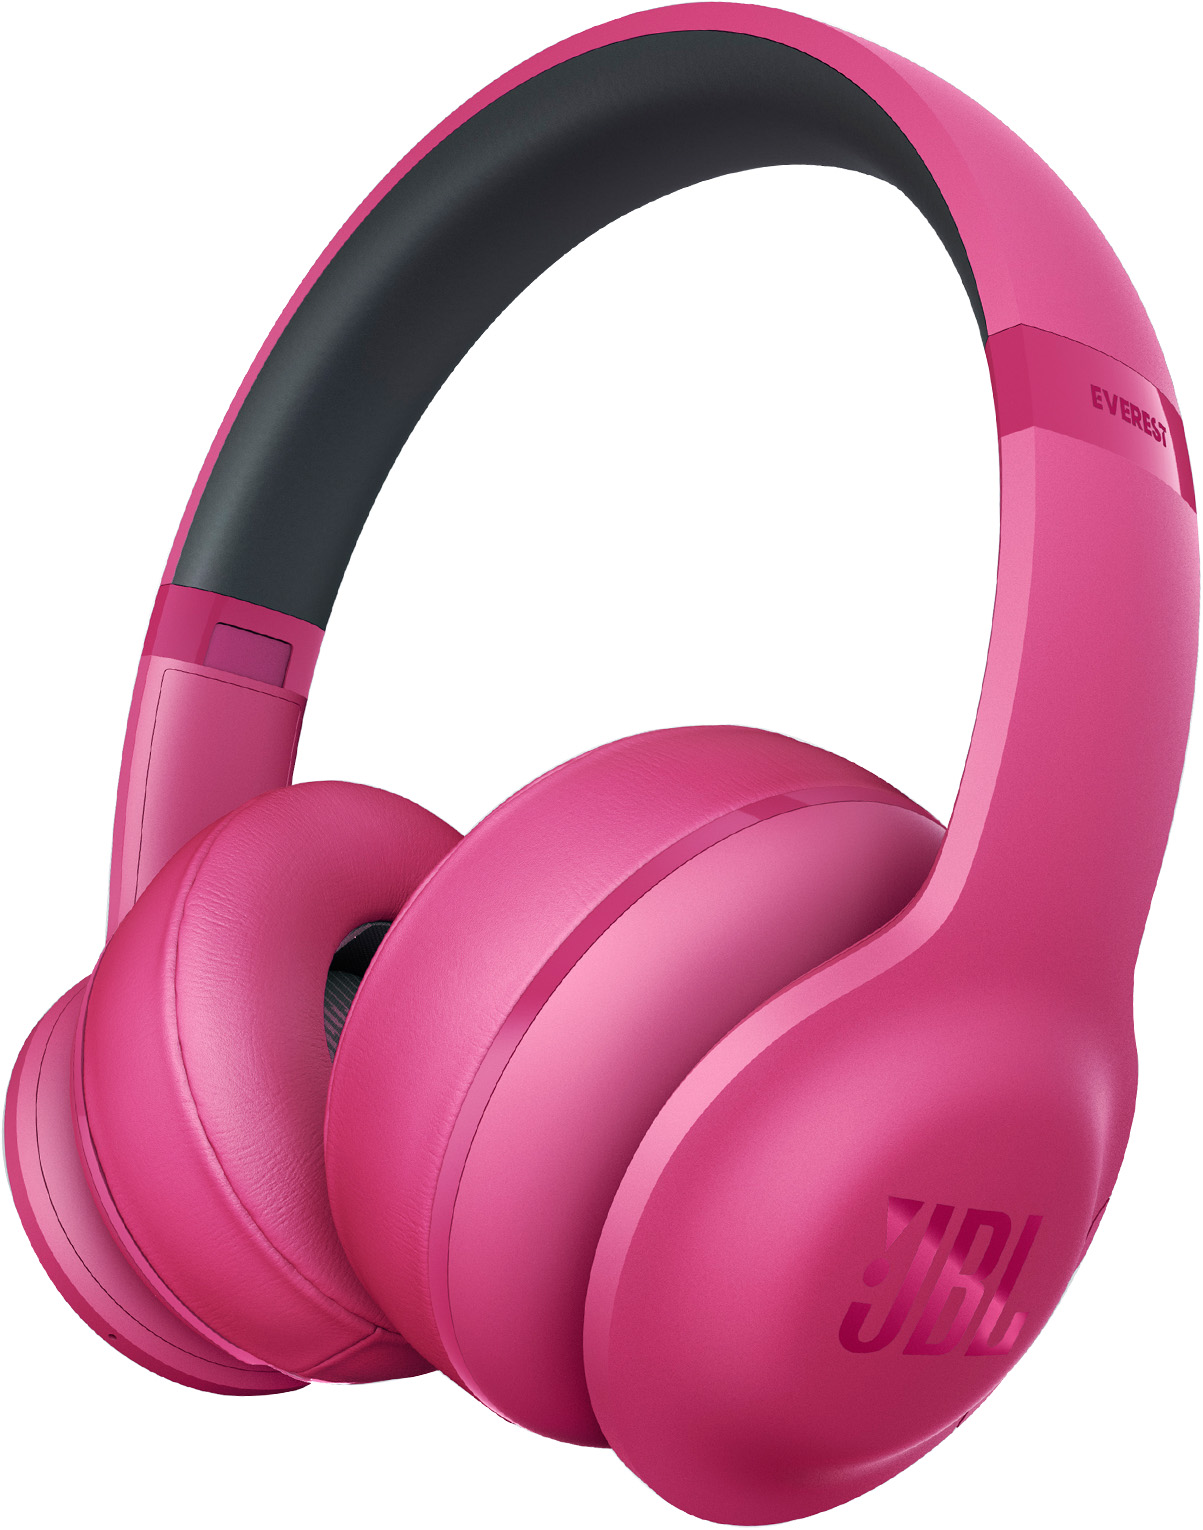 JBL Everest 300 On-Ear Wireless Headphones (Pink)